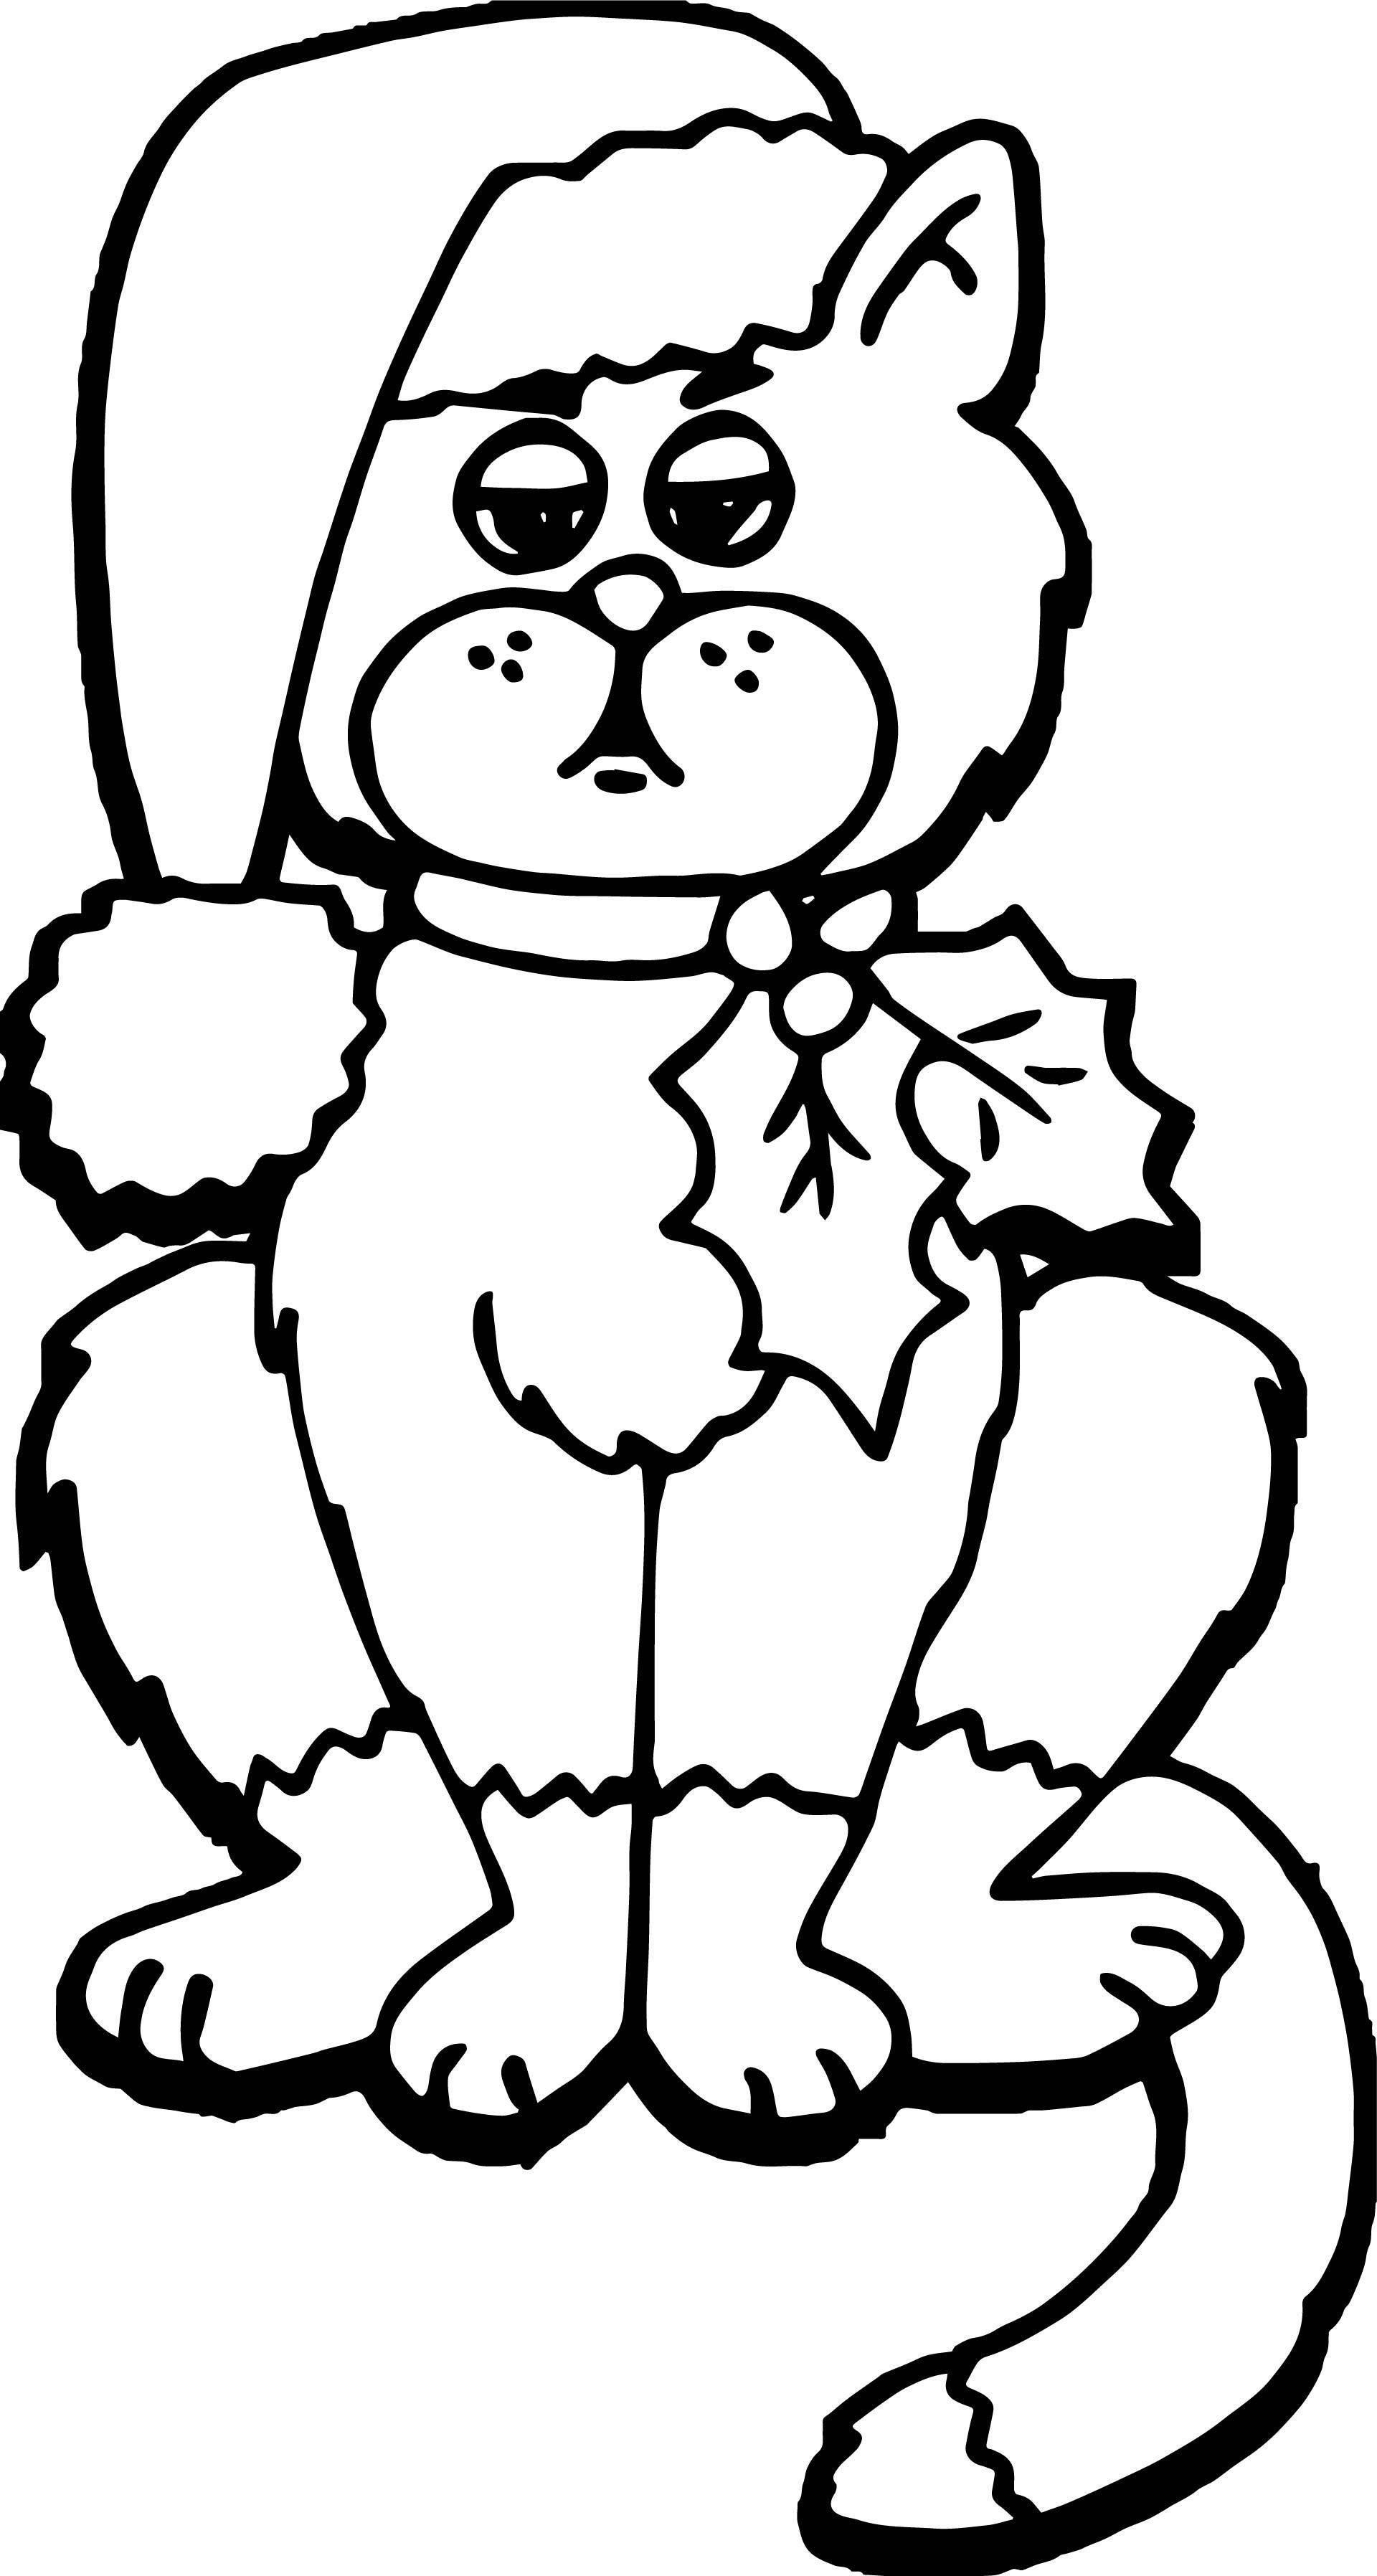 Cover Cat Coloring Page